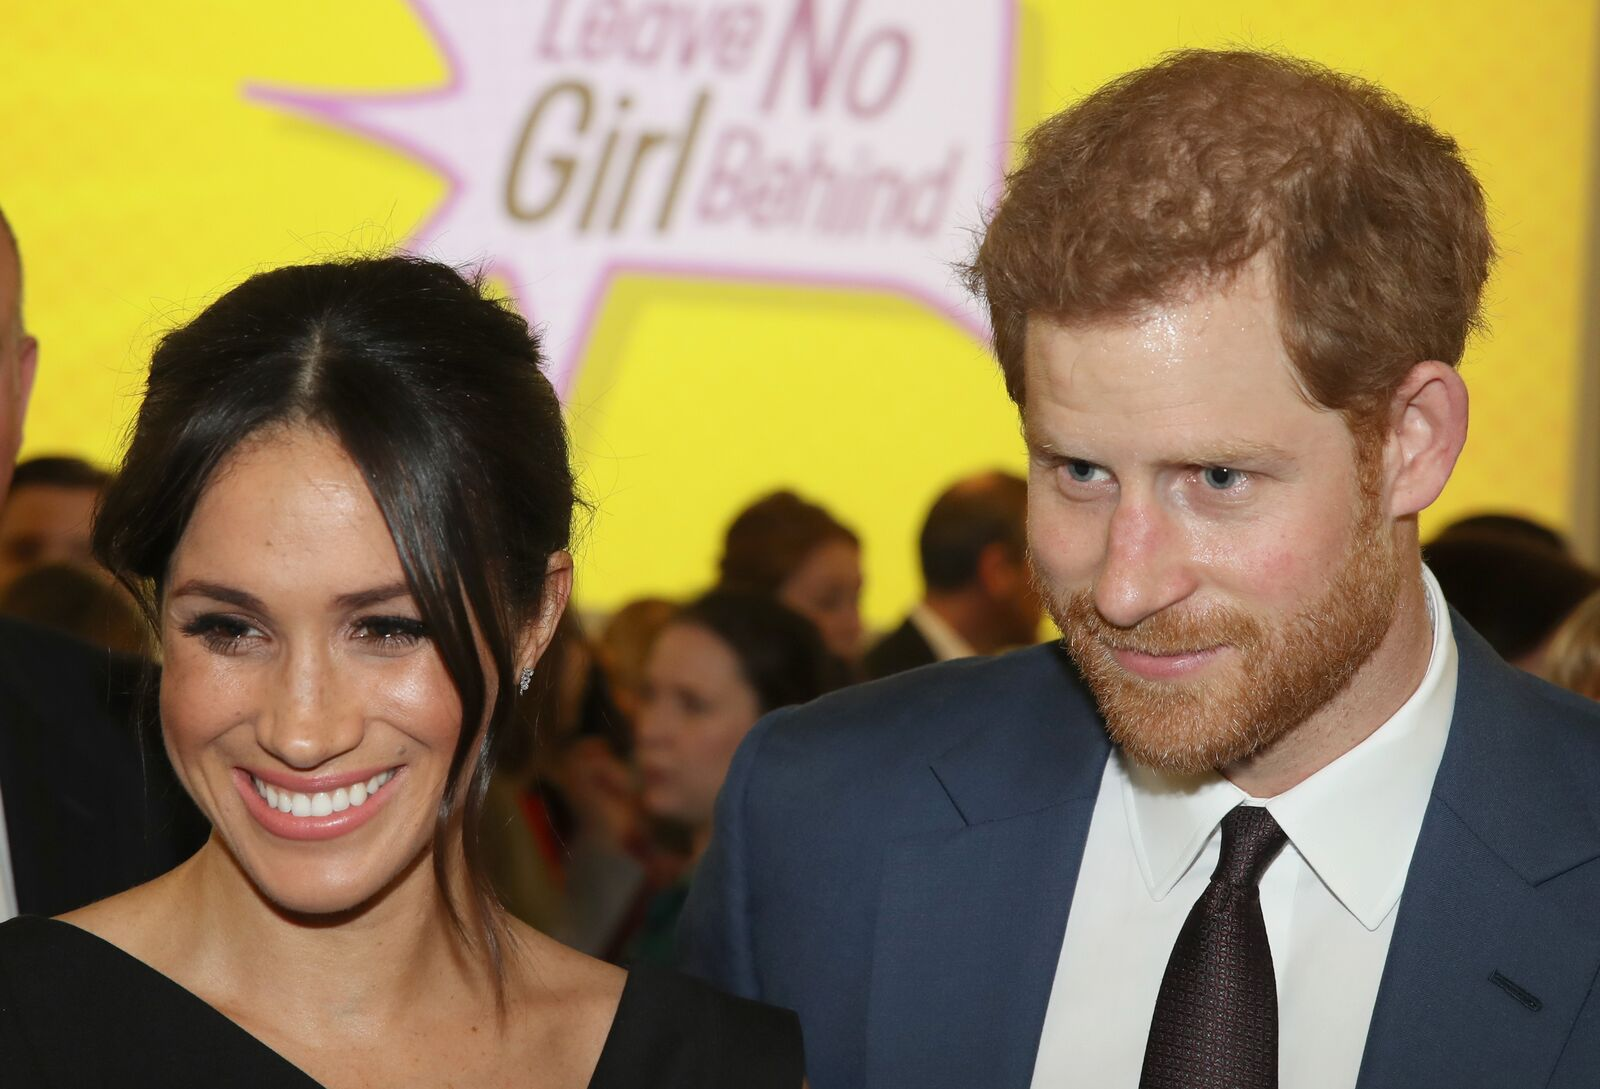 Meghan Markle and Prince Harry at the Women's Empowerment reception at the Royal Aeronautical Society. | Photo: Getty Images